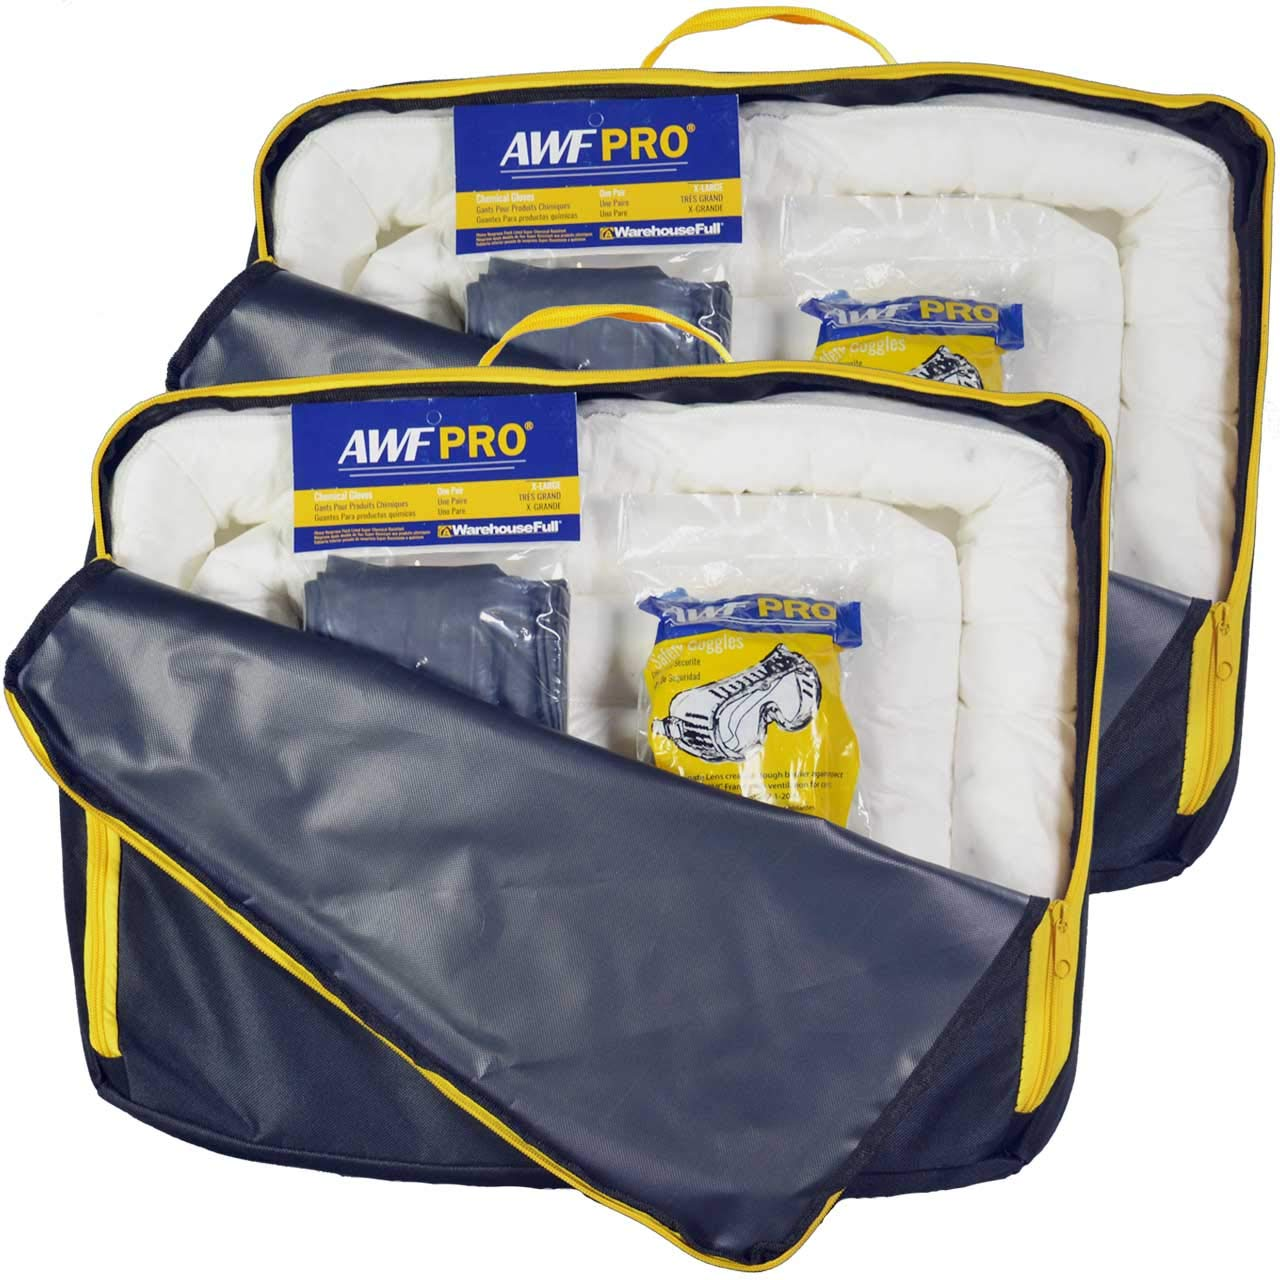 3 Sorbent Socks 5 Disposal Bags 1 Pair of Goggles and Chemical Gloves Portable Oil Only Spill Kit 2 Pack: Each Kit Contains 35 Pieces: 25 Sorbent Pads Packed in a Heavy Duty Reusable Nylon Bag